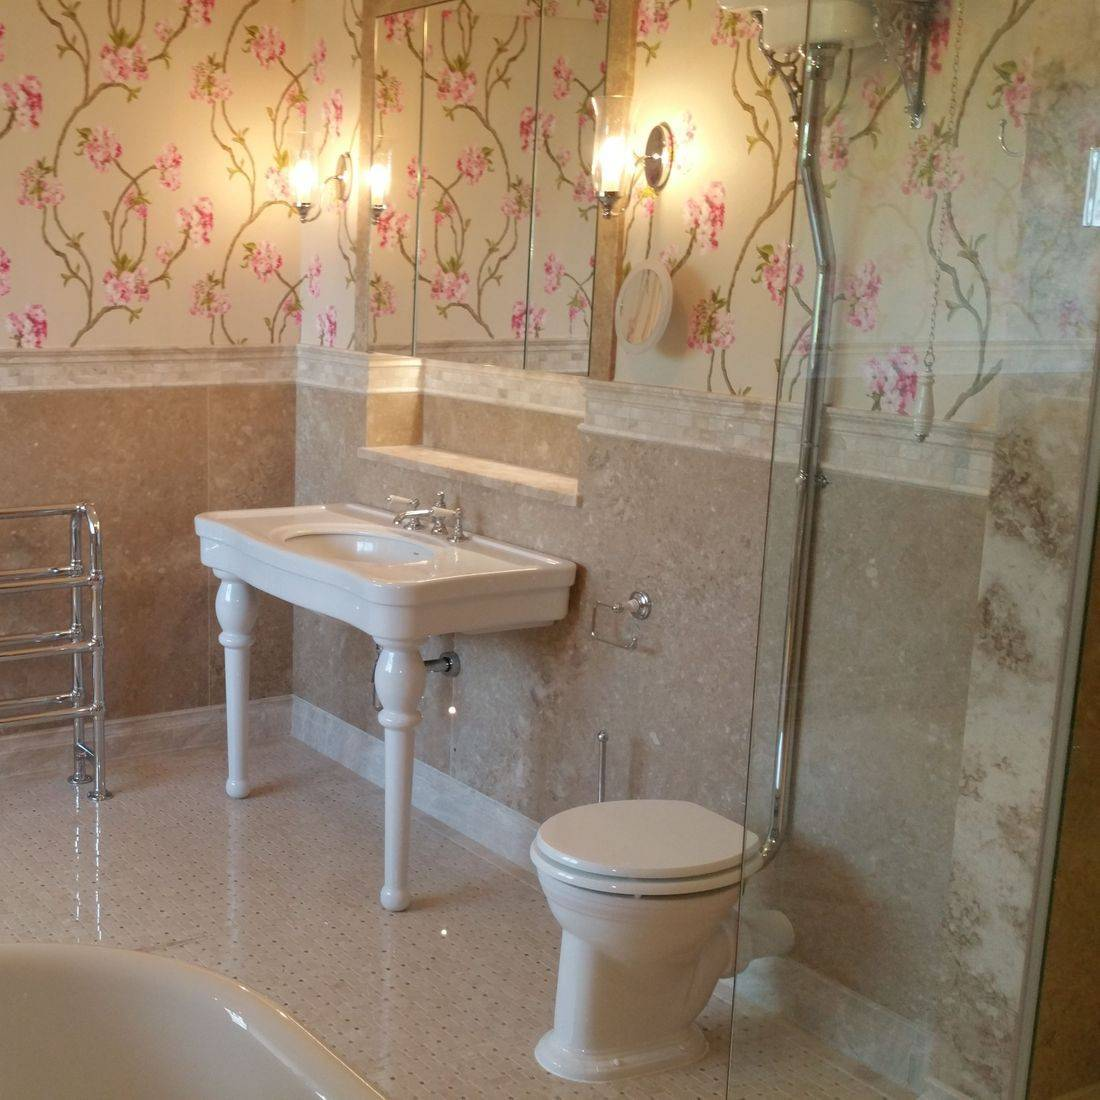 Tiler, bathroom fitter, decorator, plumber, joiner, bathroom fitter, walk in shower instalations,